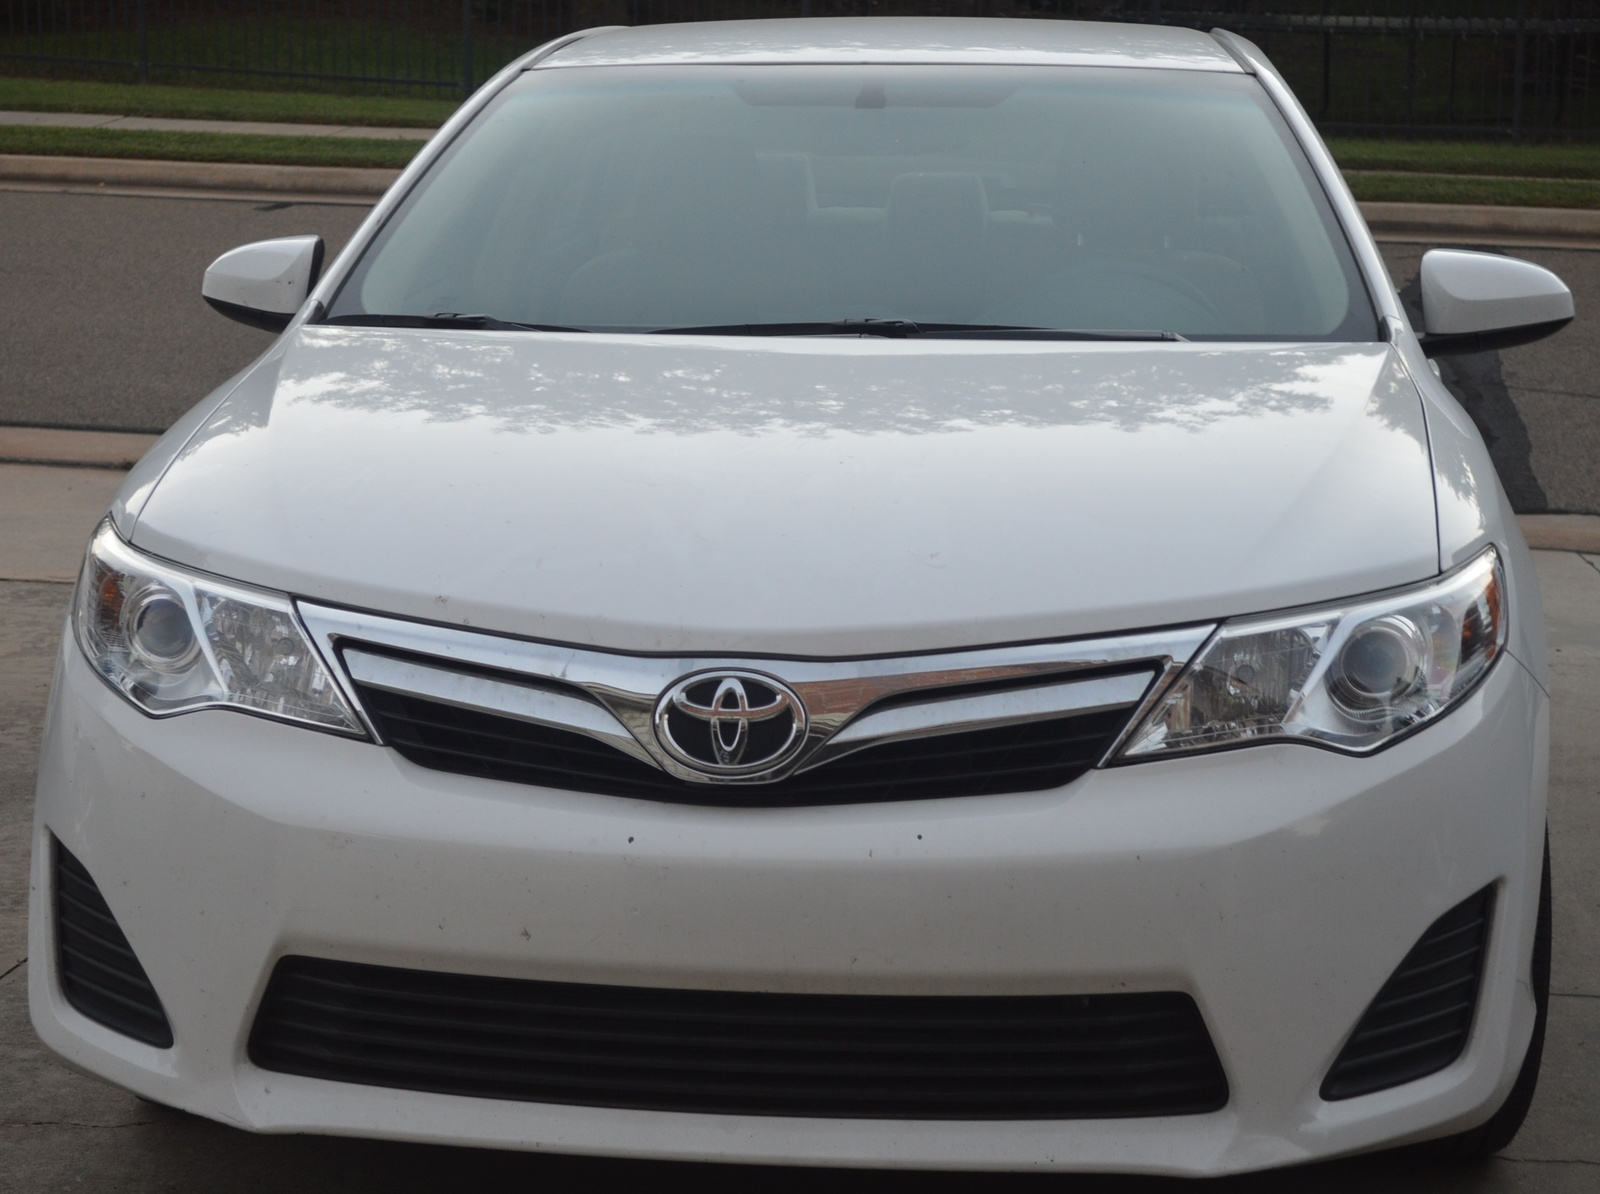 2014 toyota camry le used cars in edmond 73003. Black Bedroom Furniture Sets. Home Design Ideas